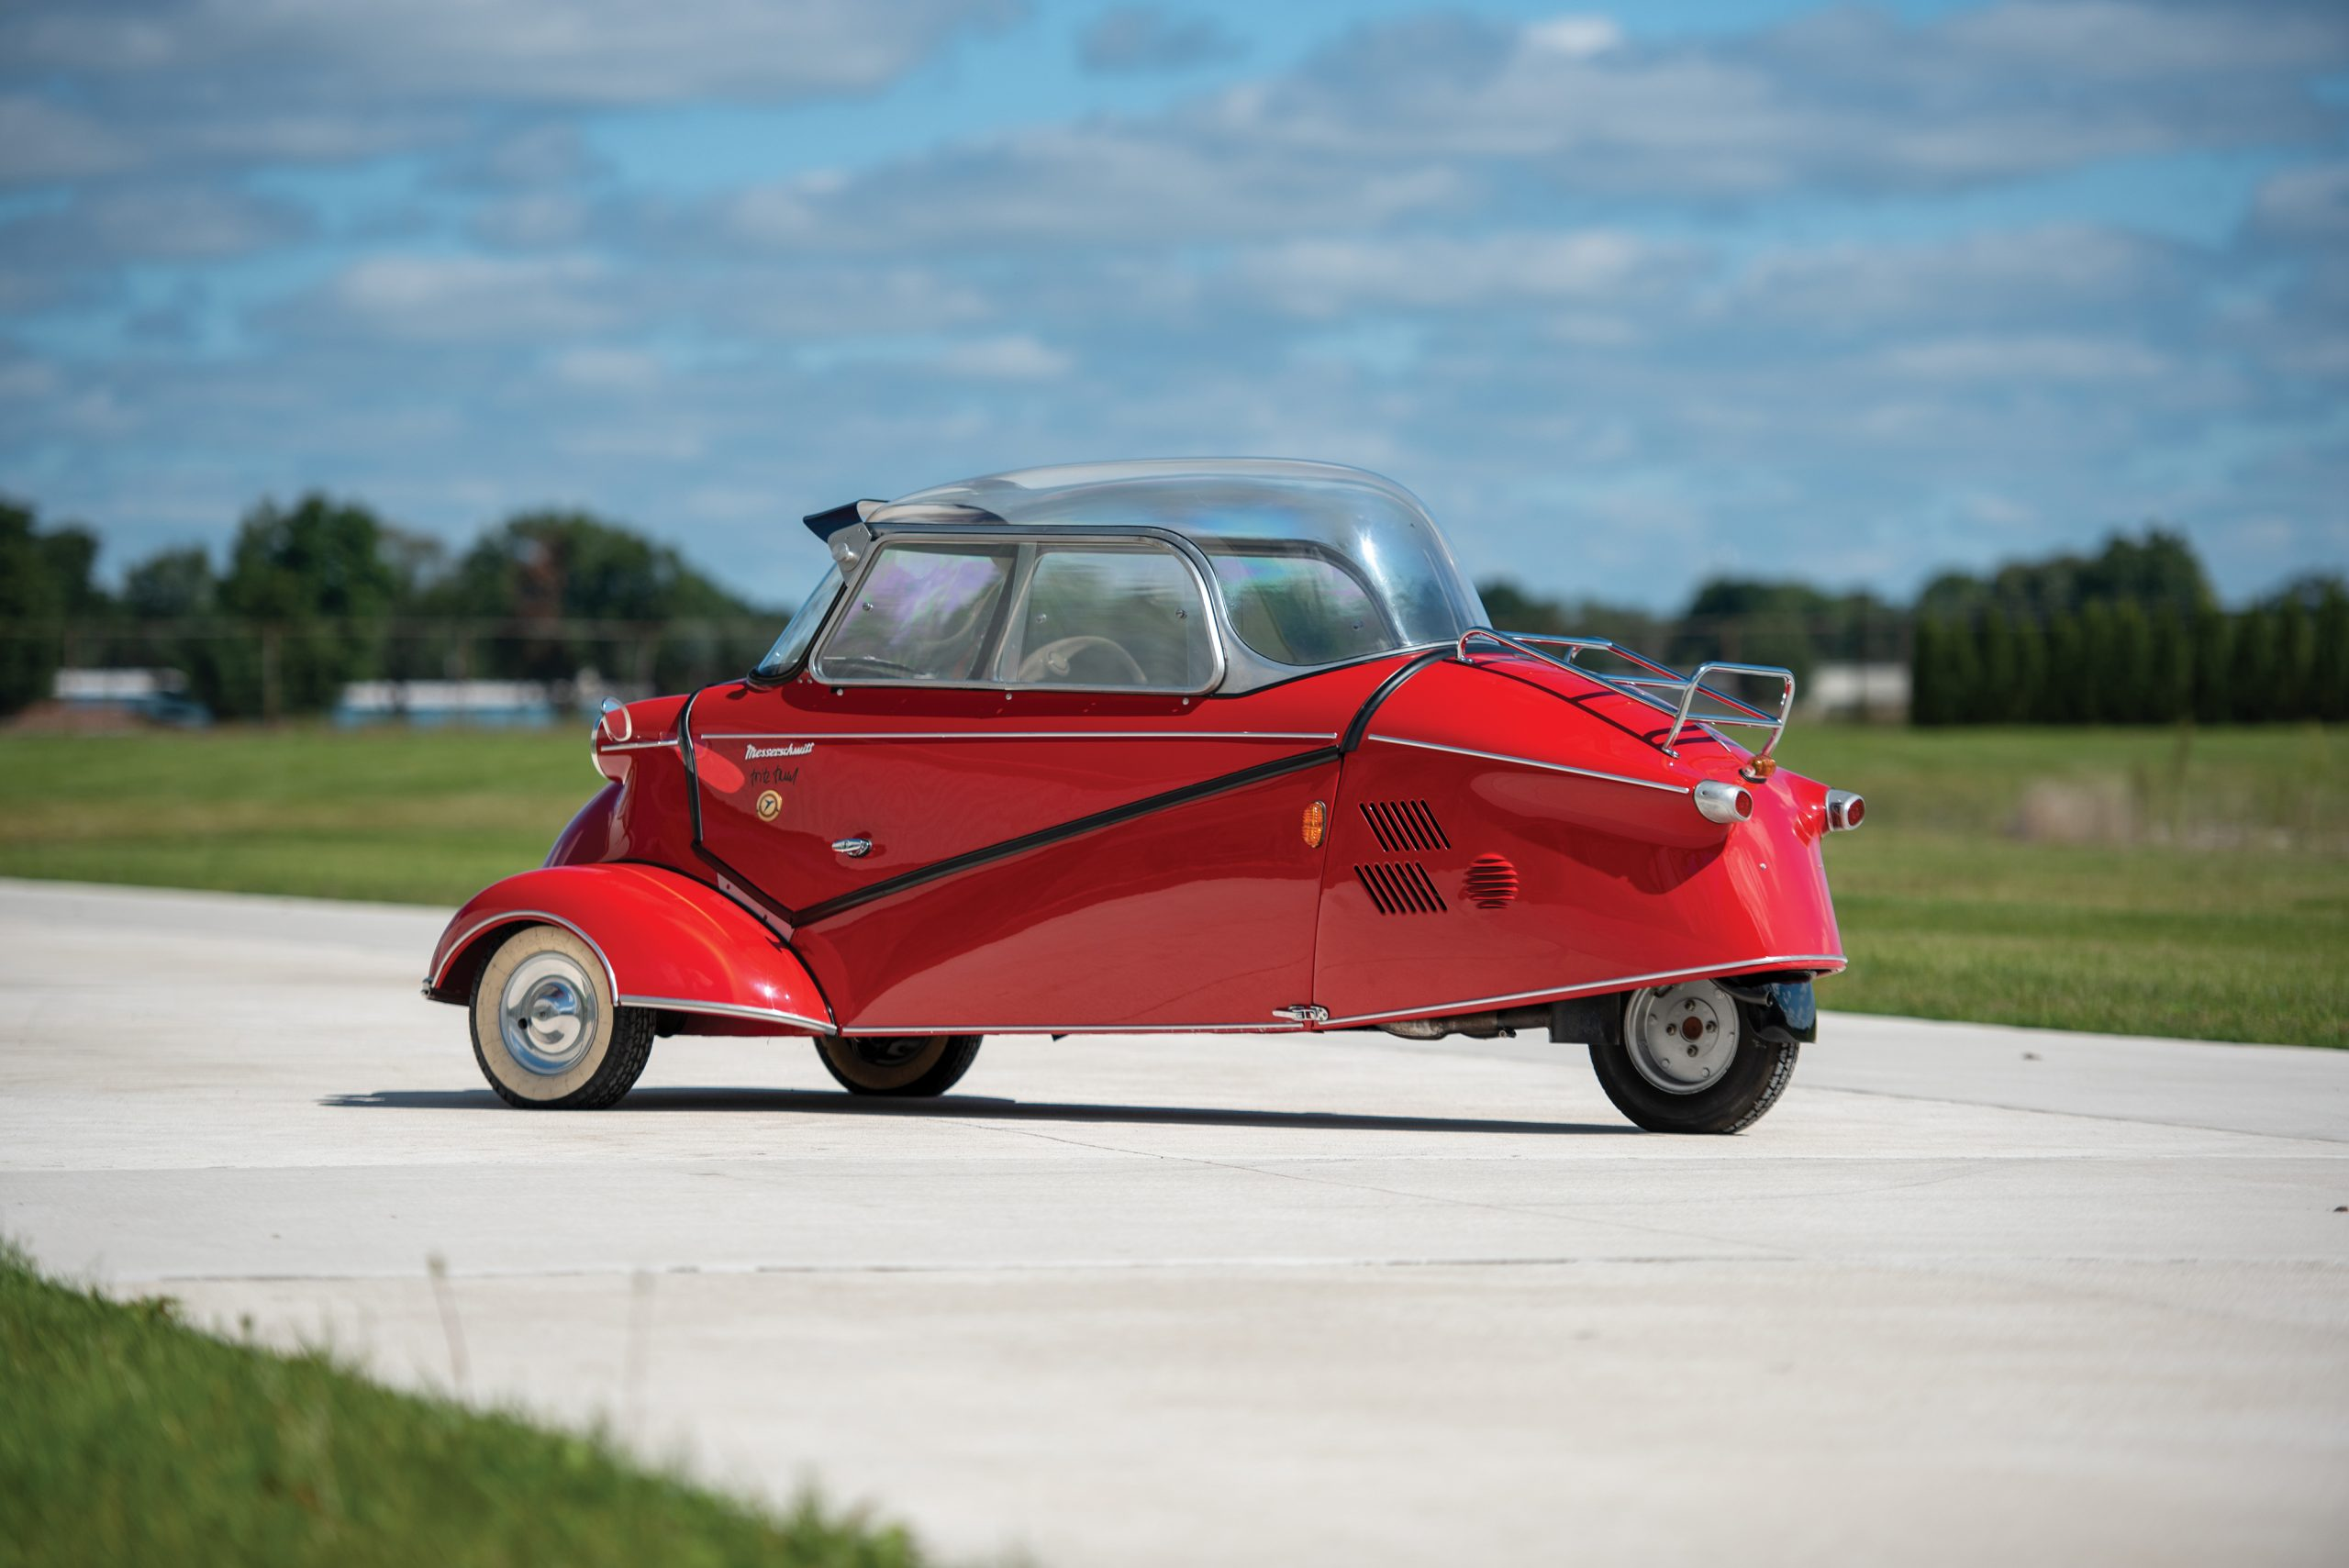 1956 Messerschmitt KR 200 rear three-quarter